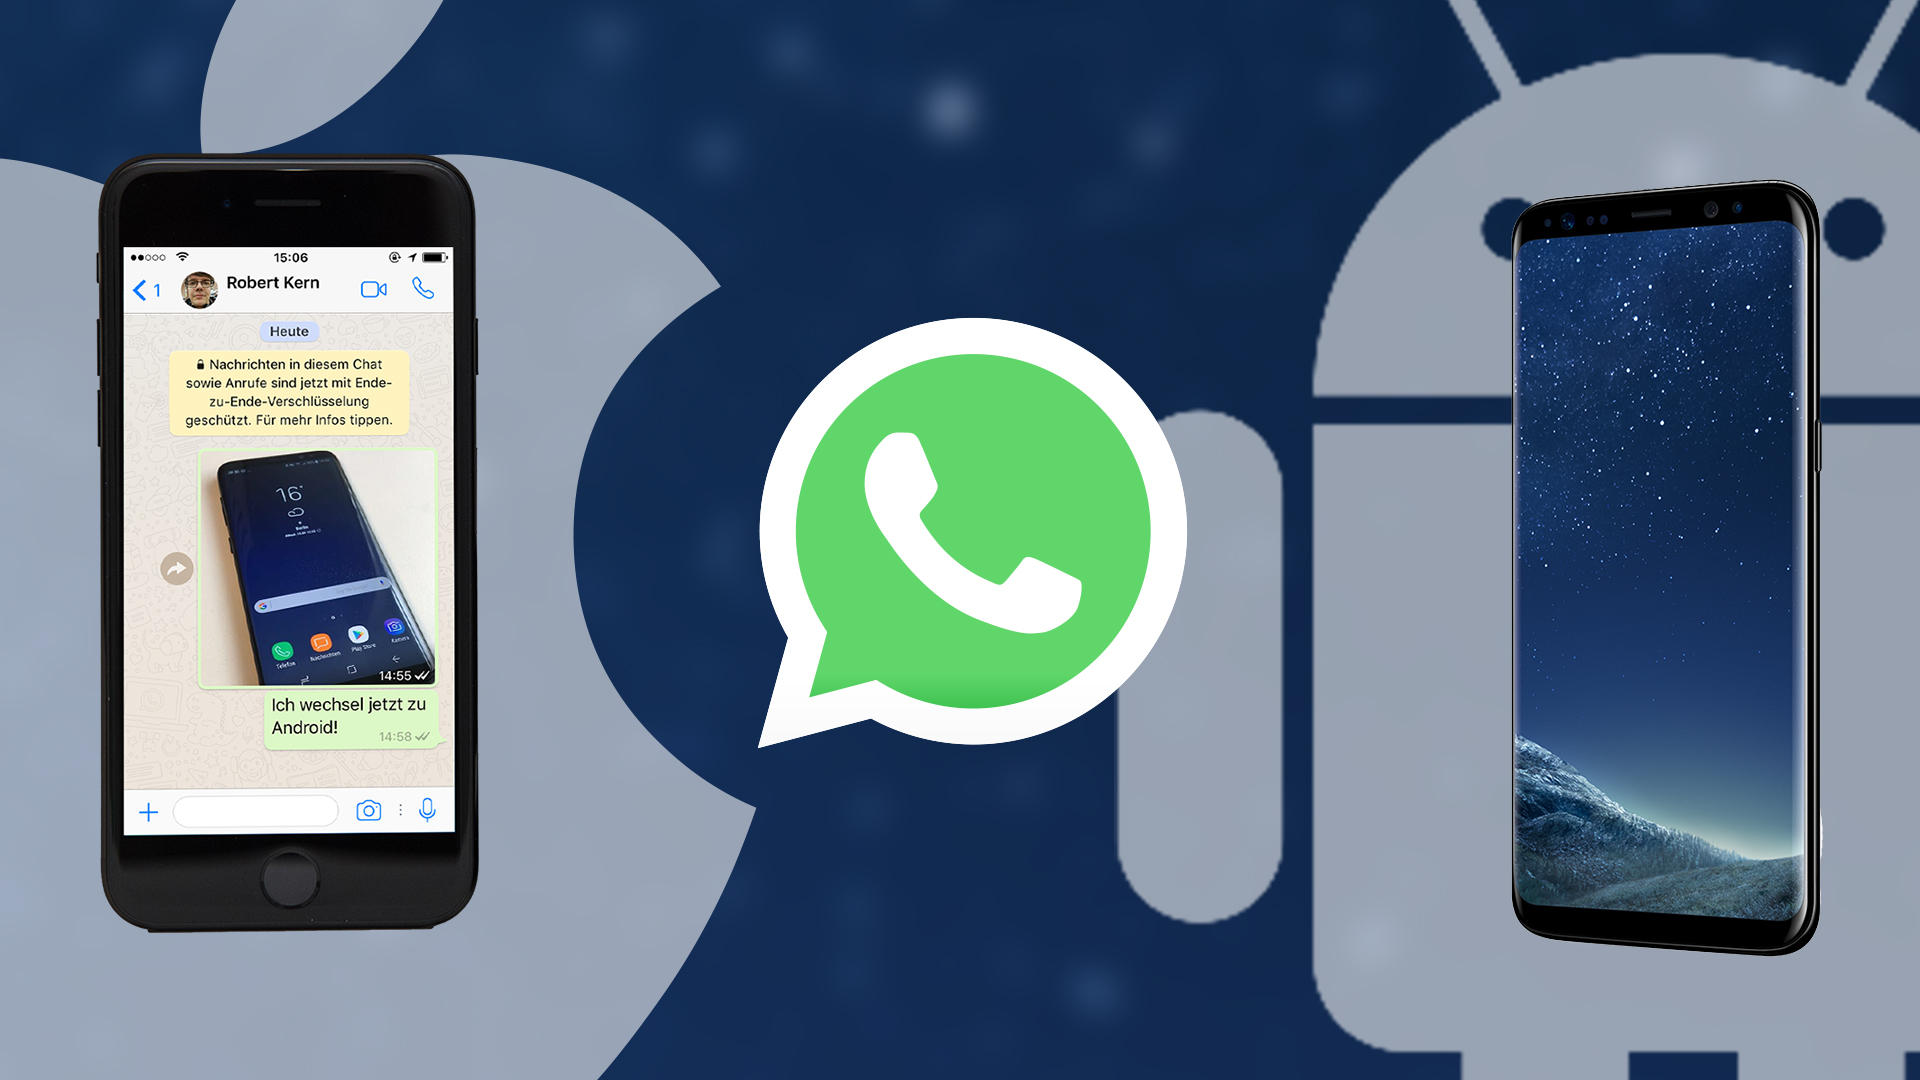 Whatsapp Bilder Übertragen Iphone